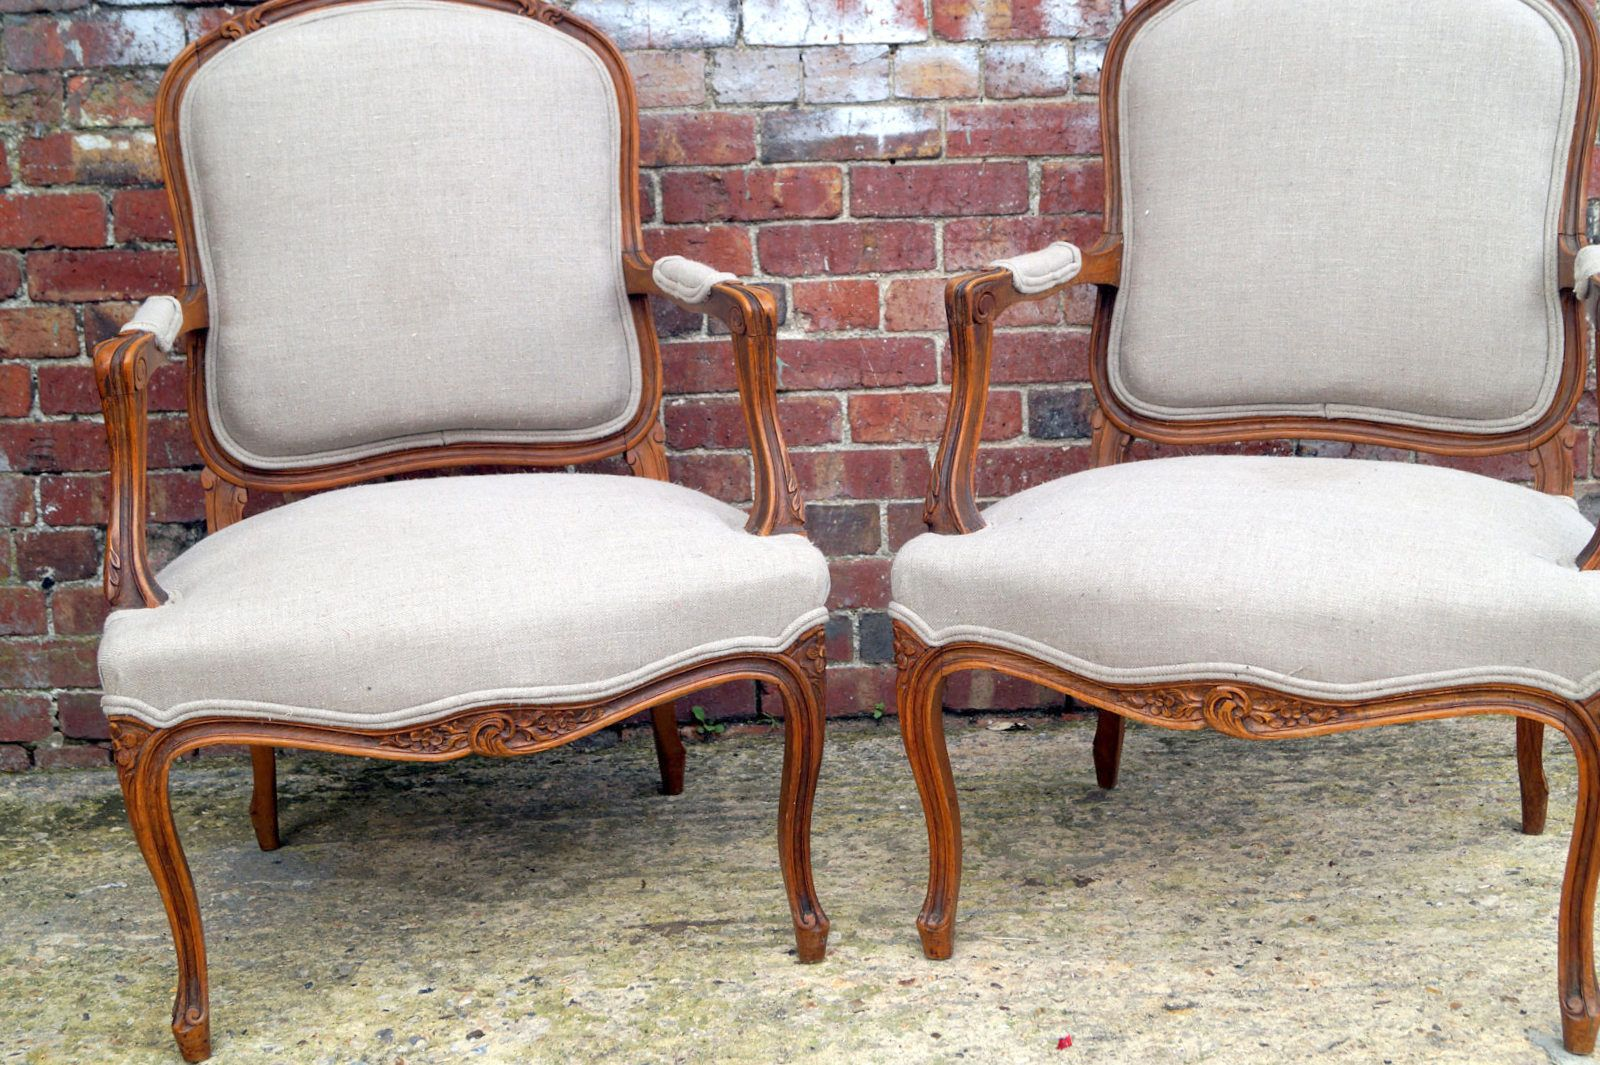 Antique french salon chairs set of 2 for sale at pamono for Salon chairs for sale